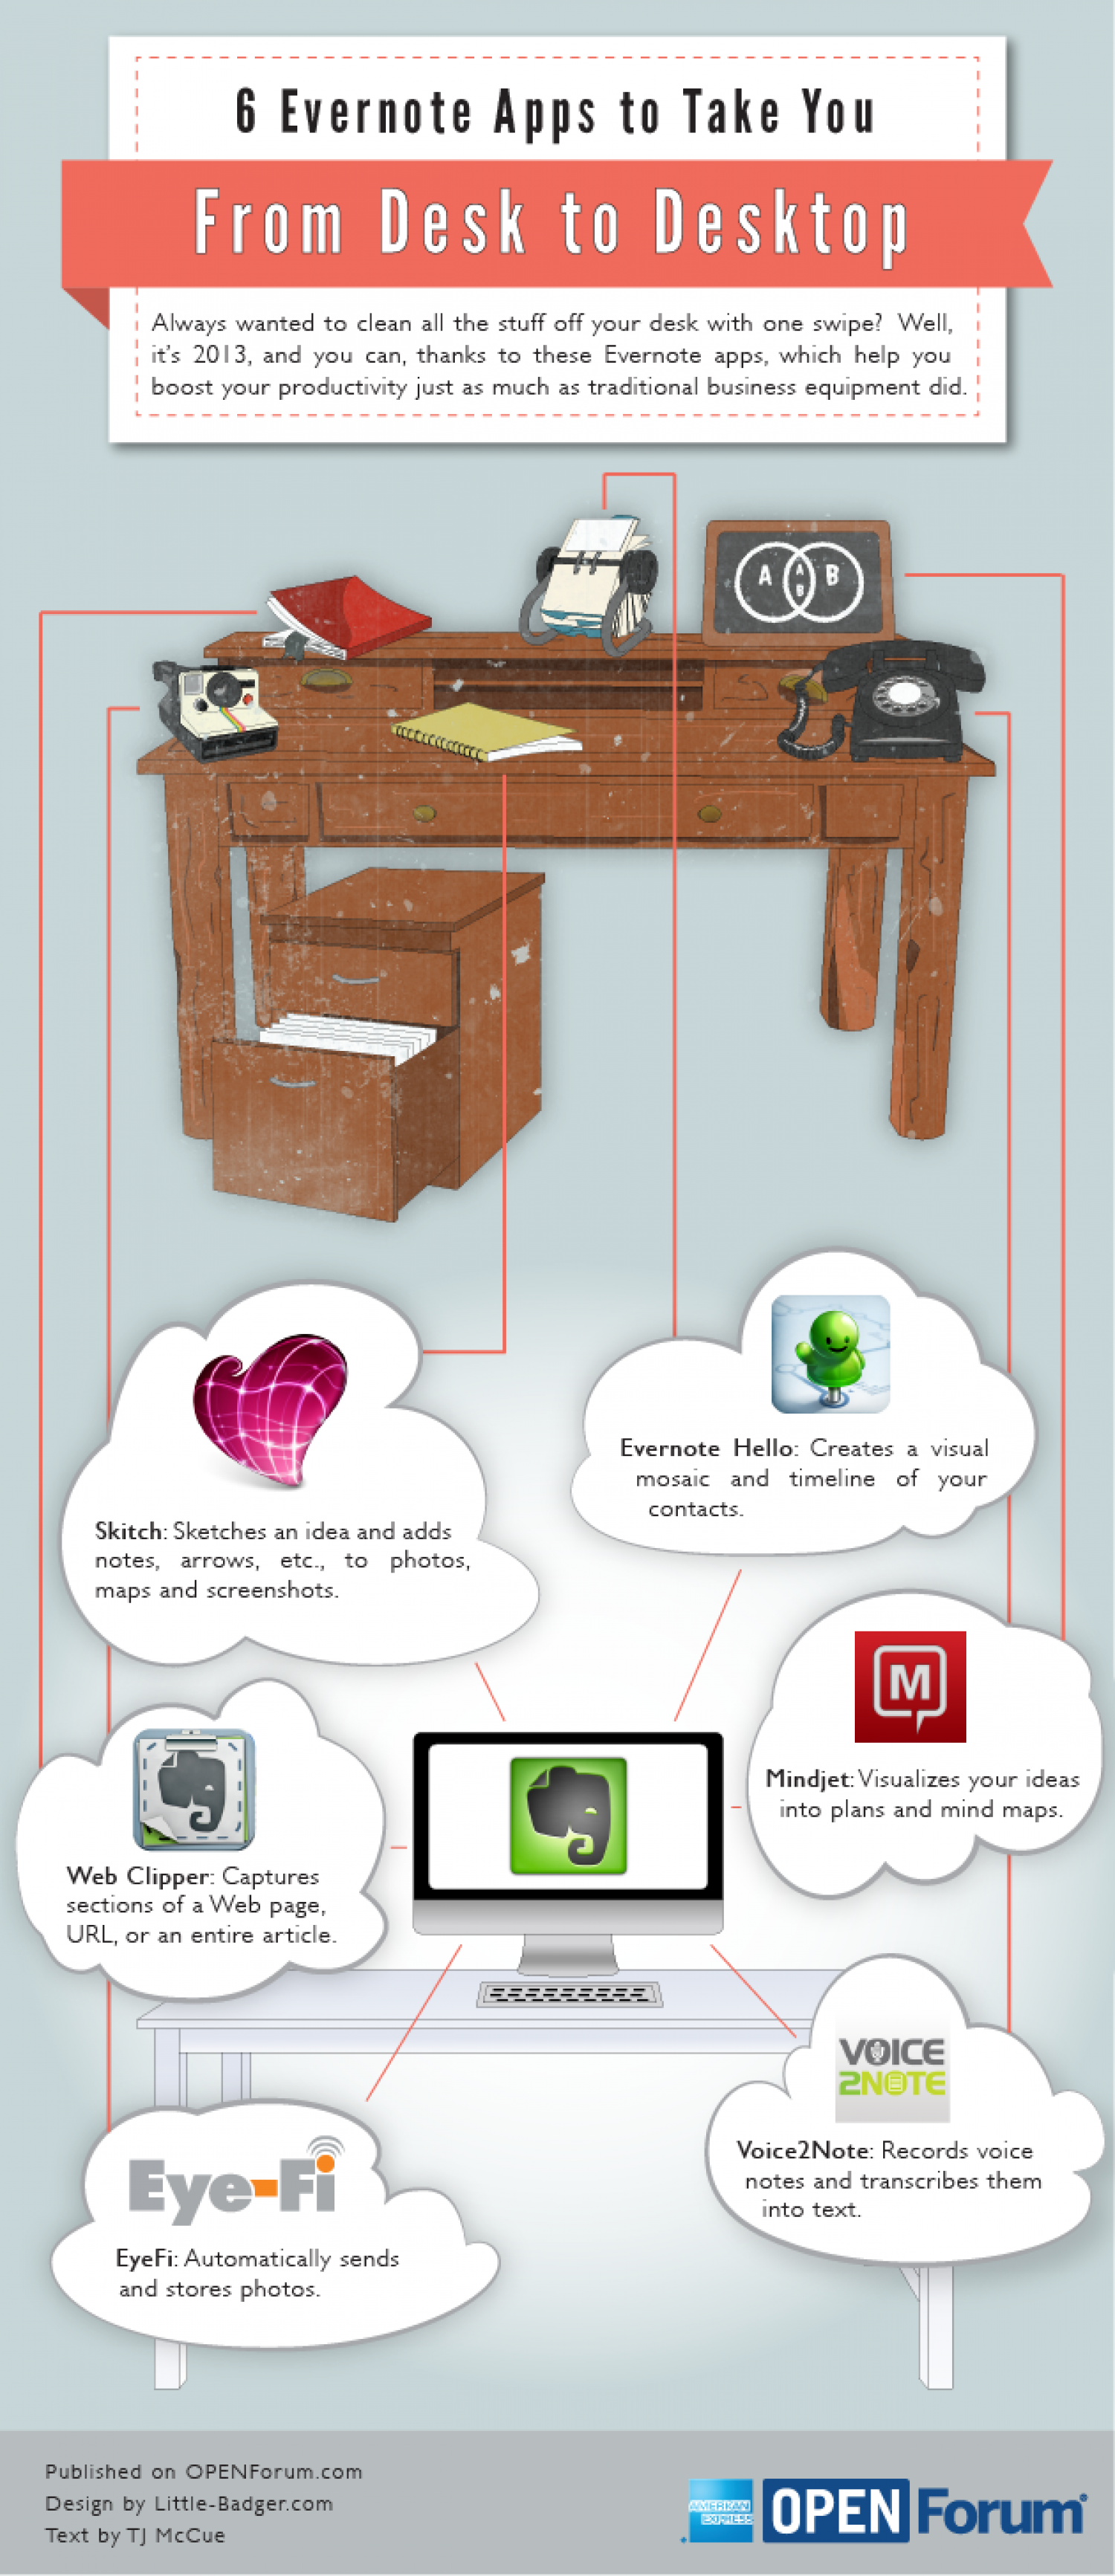 6 Evernote Apps to Take Your From Desk to Desktop Infographic